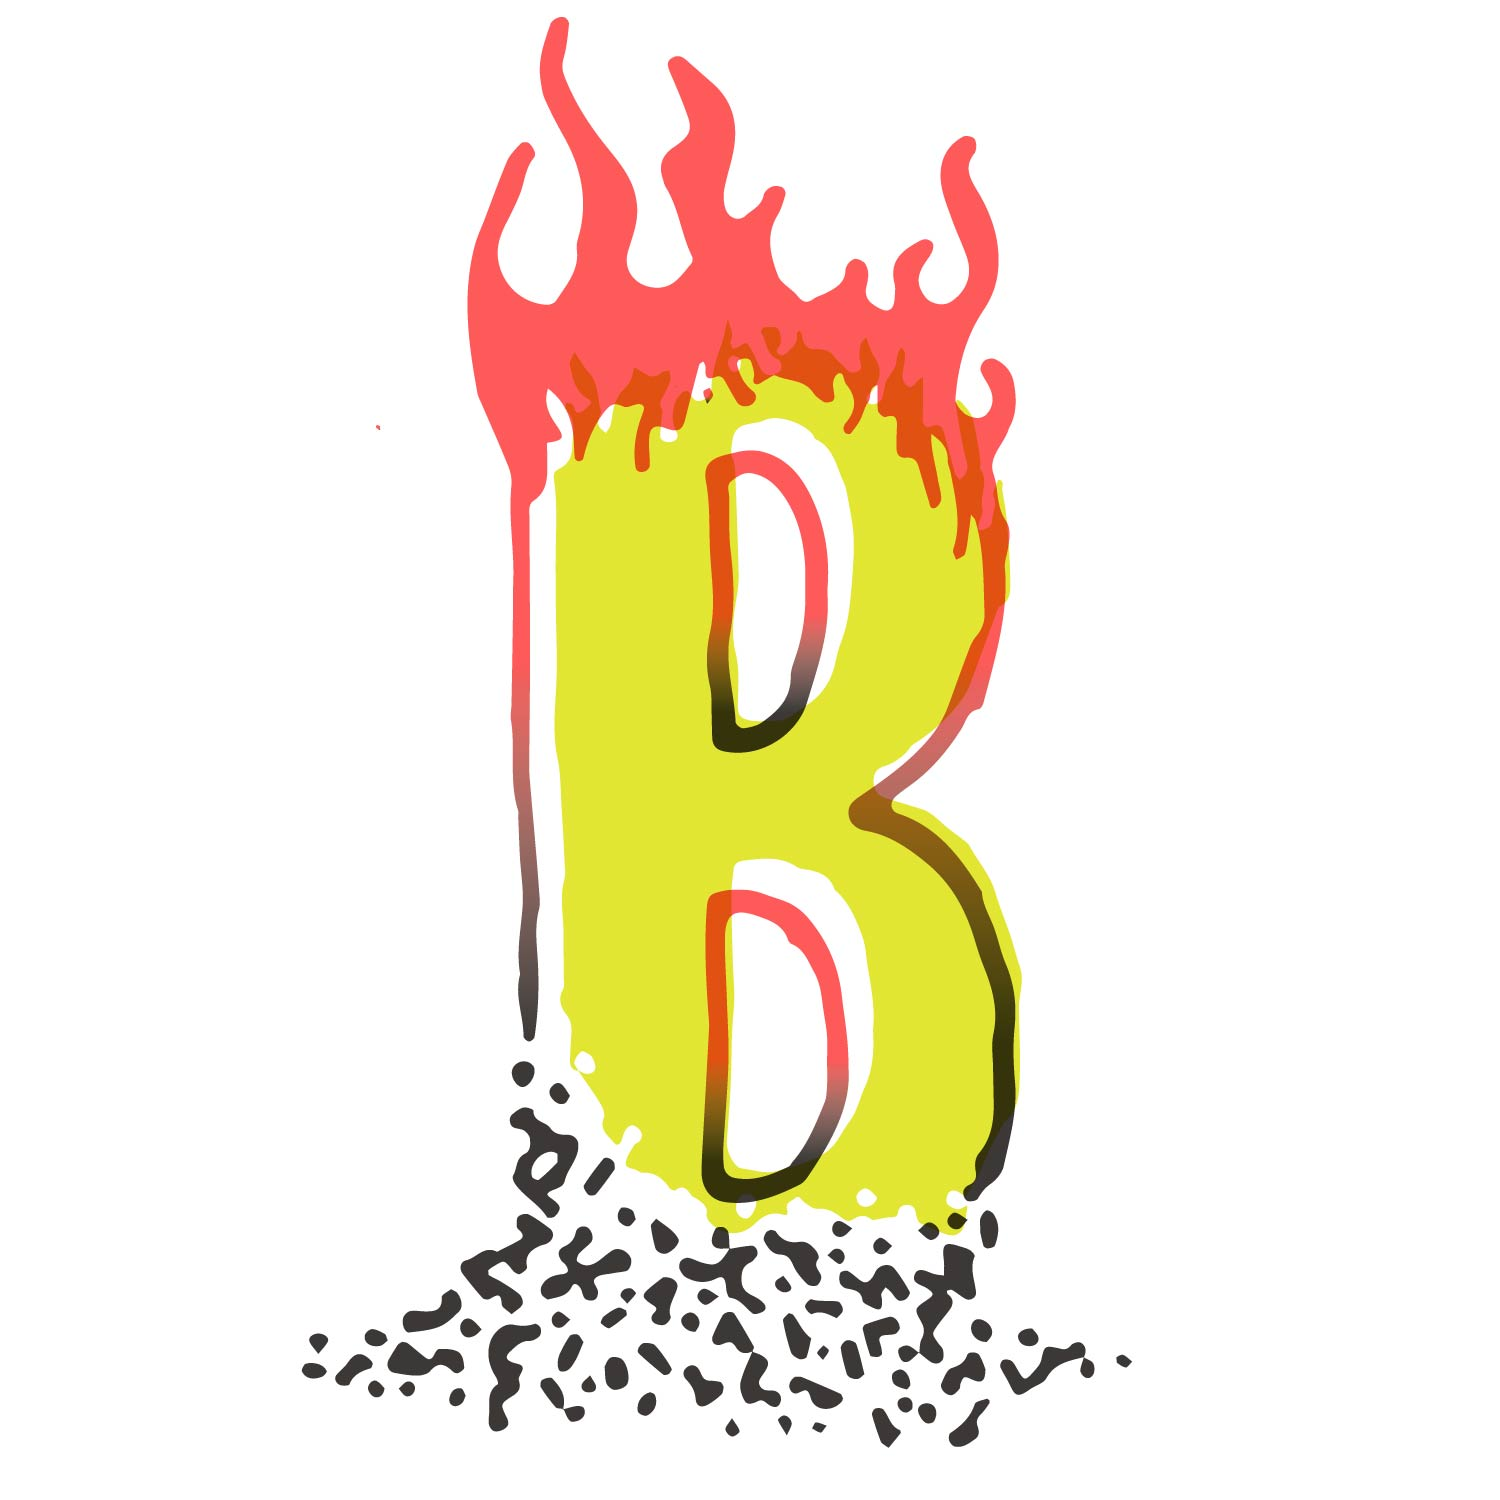 hand drawn B whose top it aflame and whose bottom is a pile of ash, outlined in radiated red and black, with an offset yellow-green interior